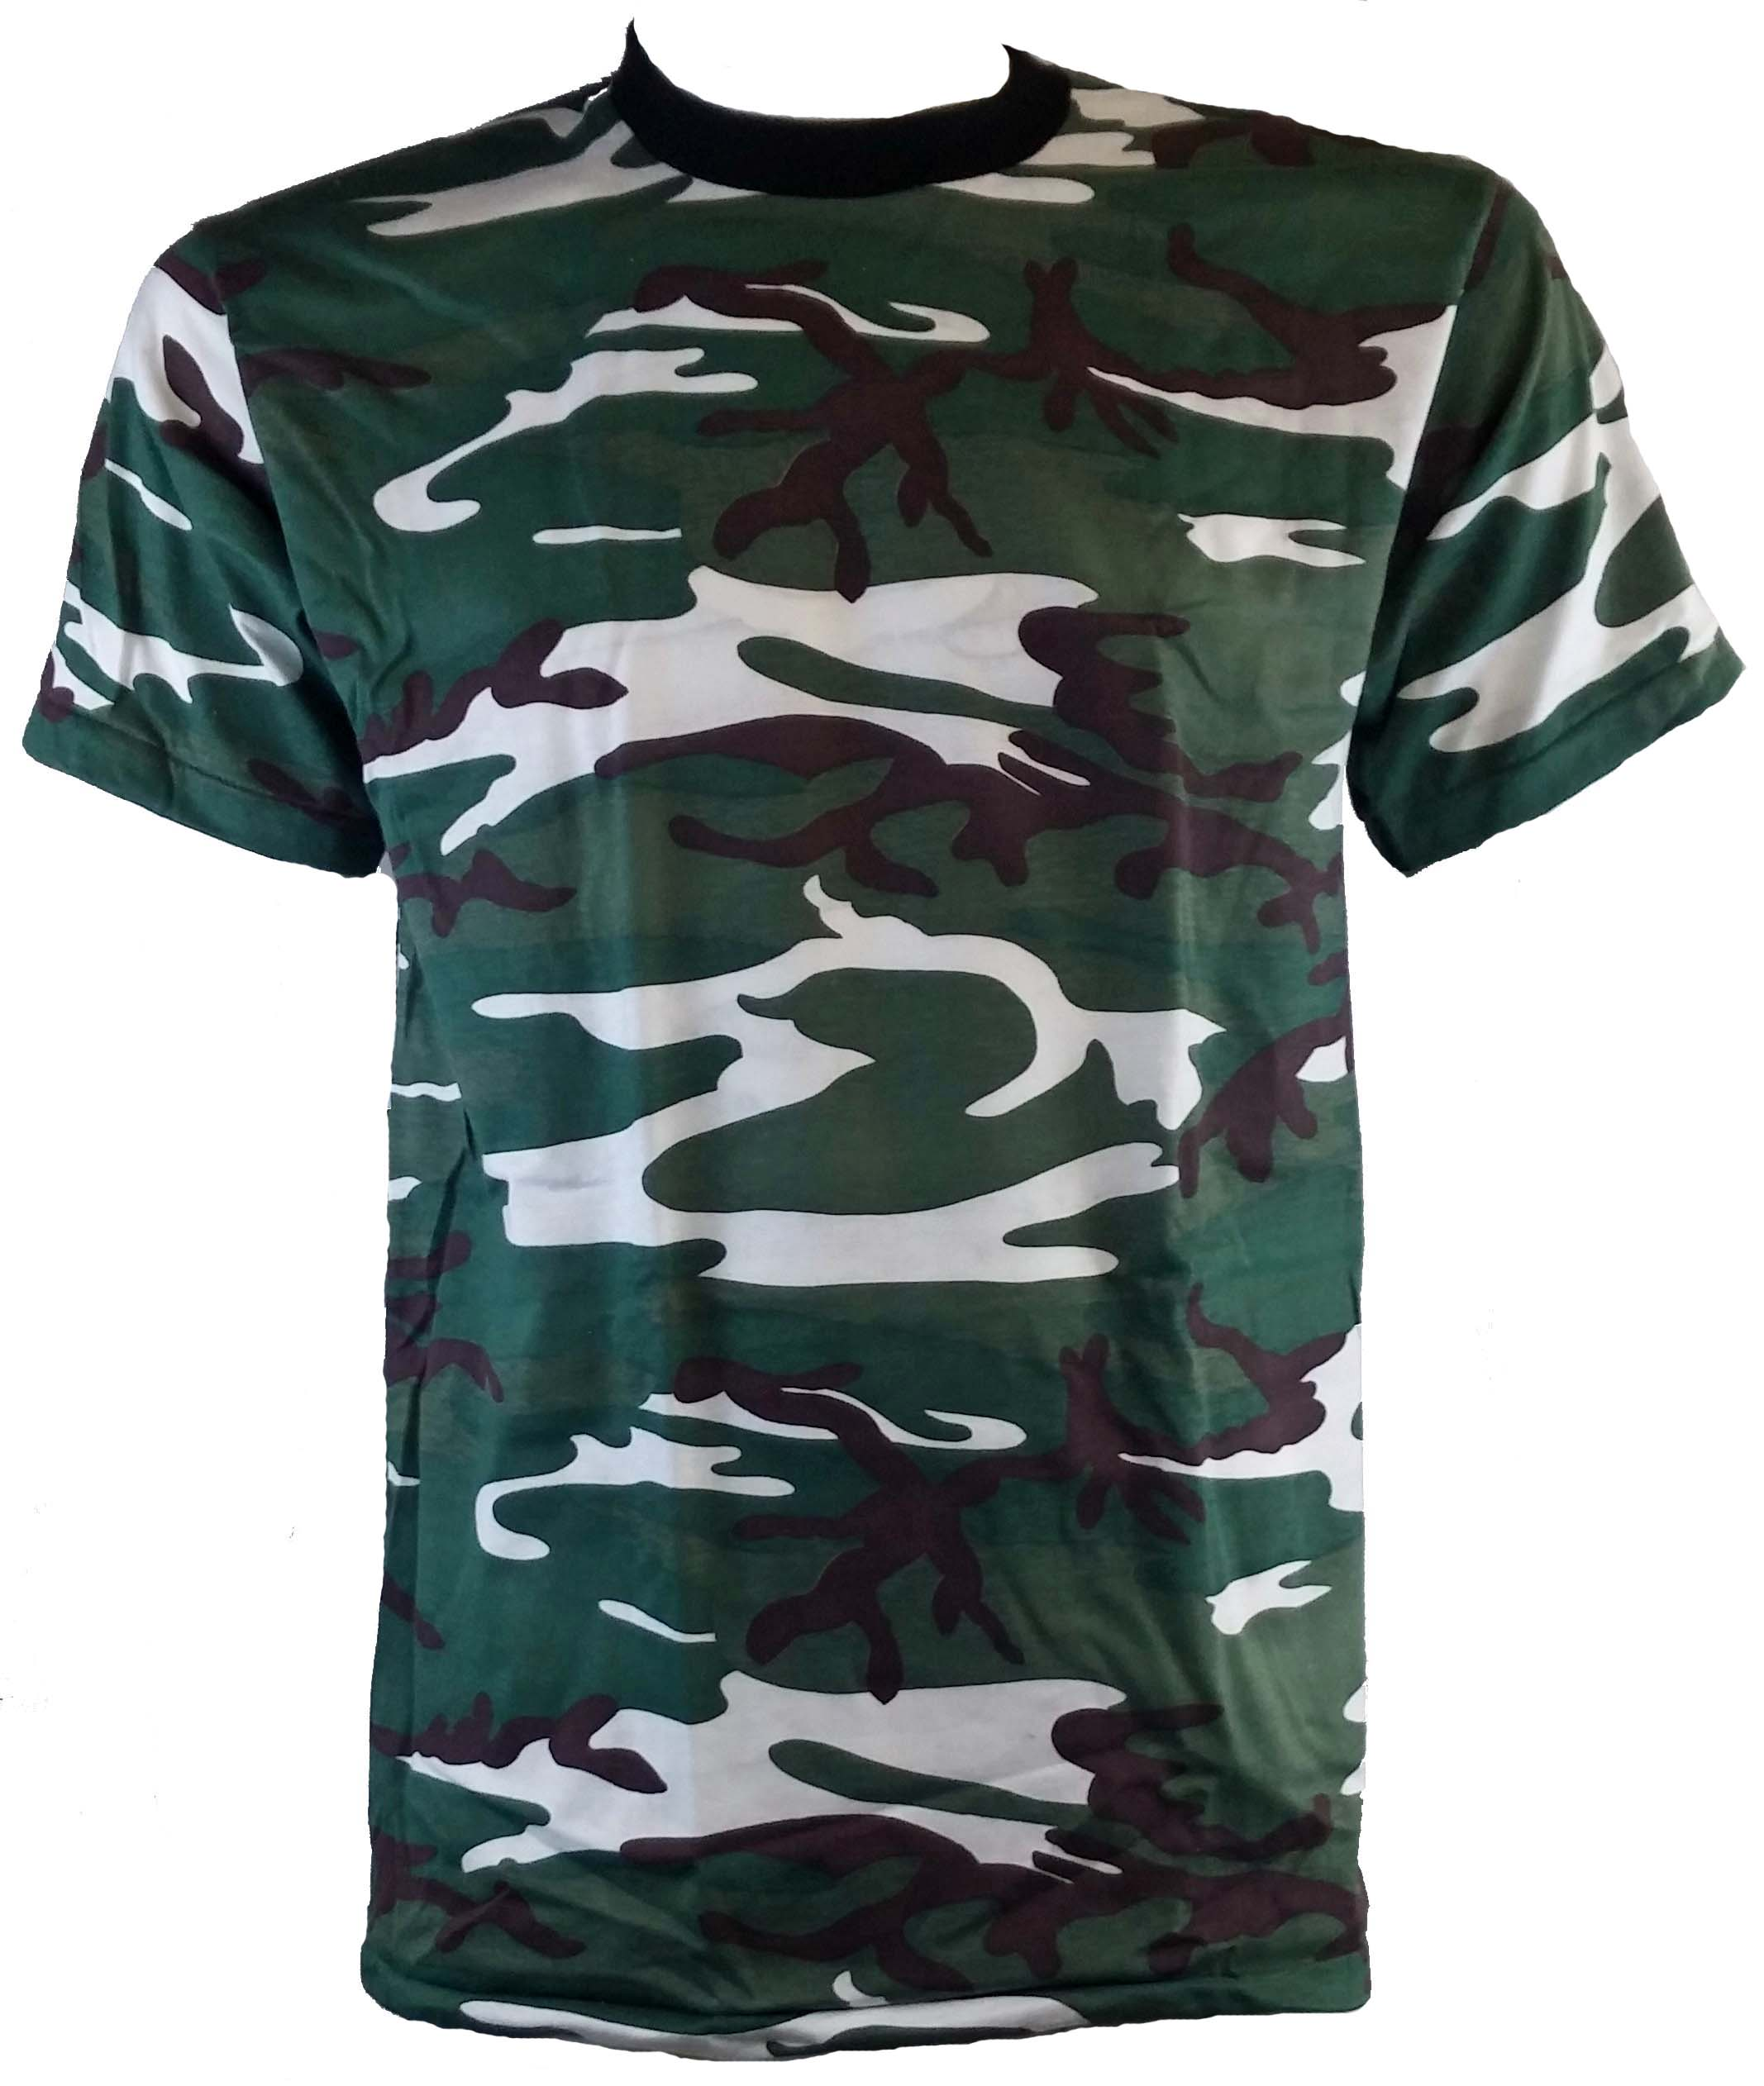 SGS Forest green T-Shirt **in sale**